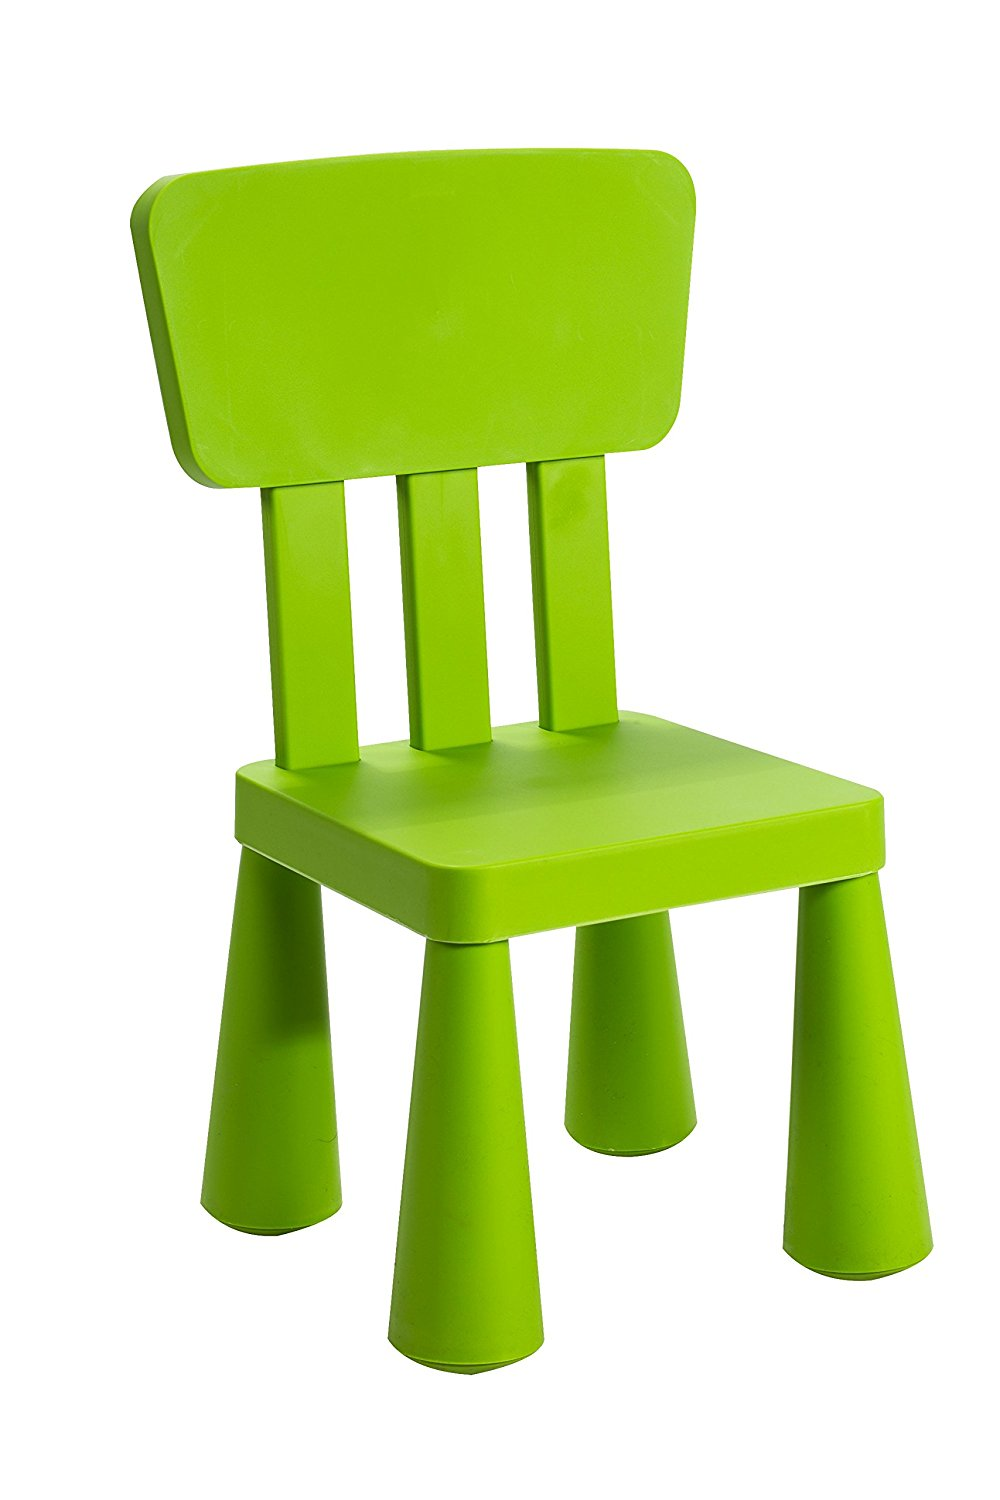 Cheap Child Care Tables And Chairs Find Child Care Tables